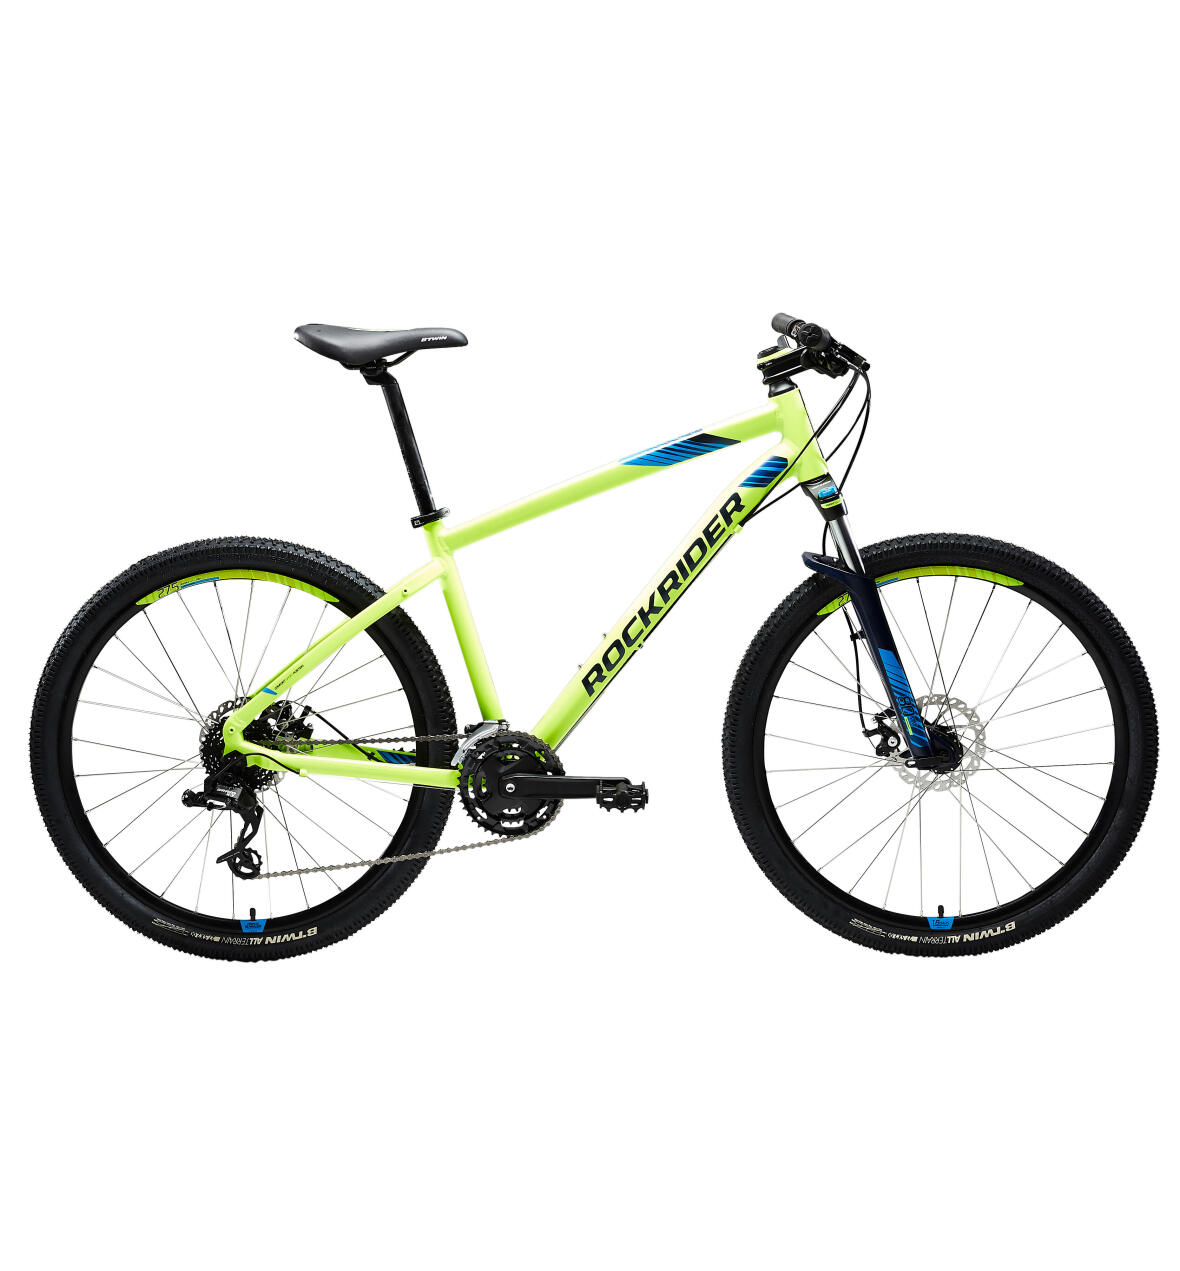 VTT ROCKRIDER ST520 YELLOW